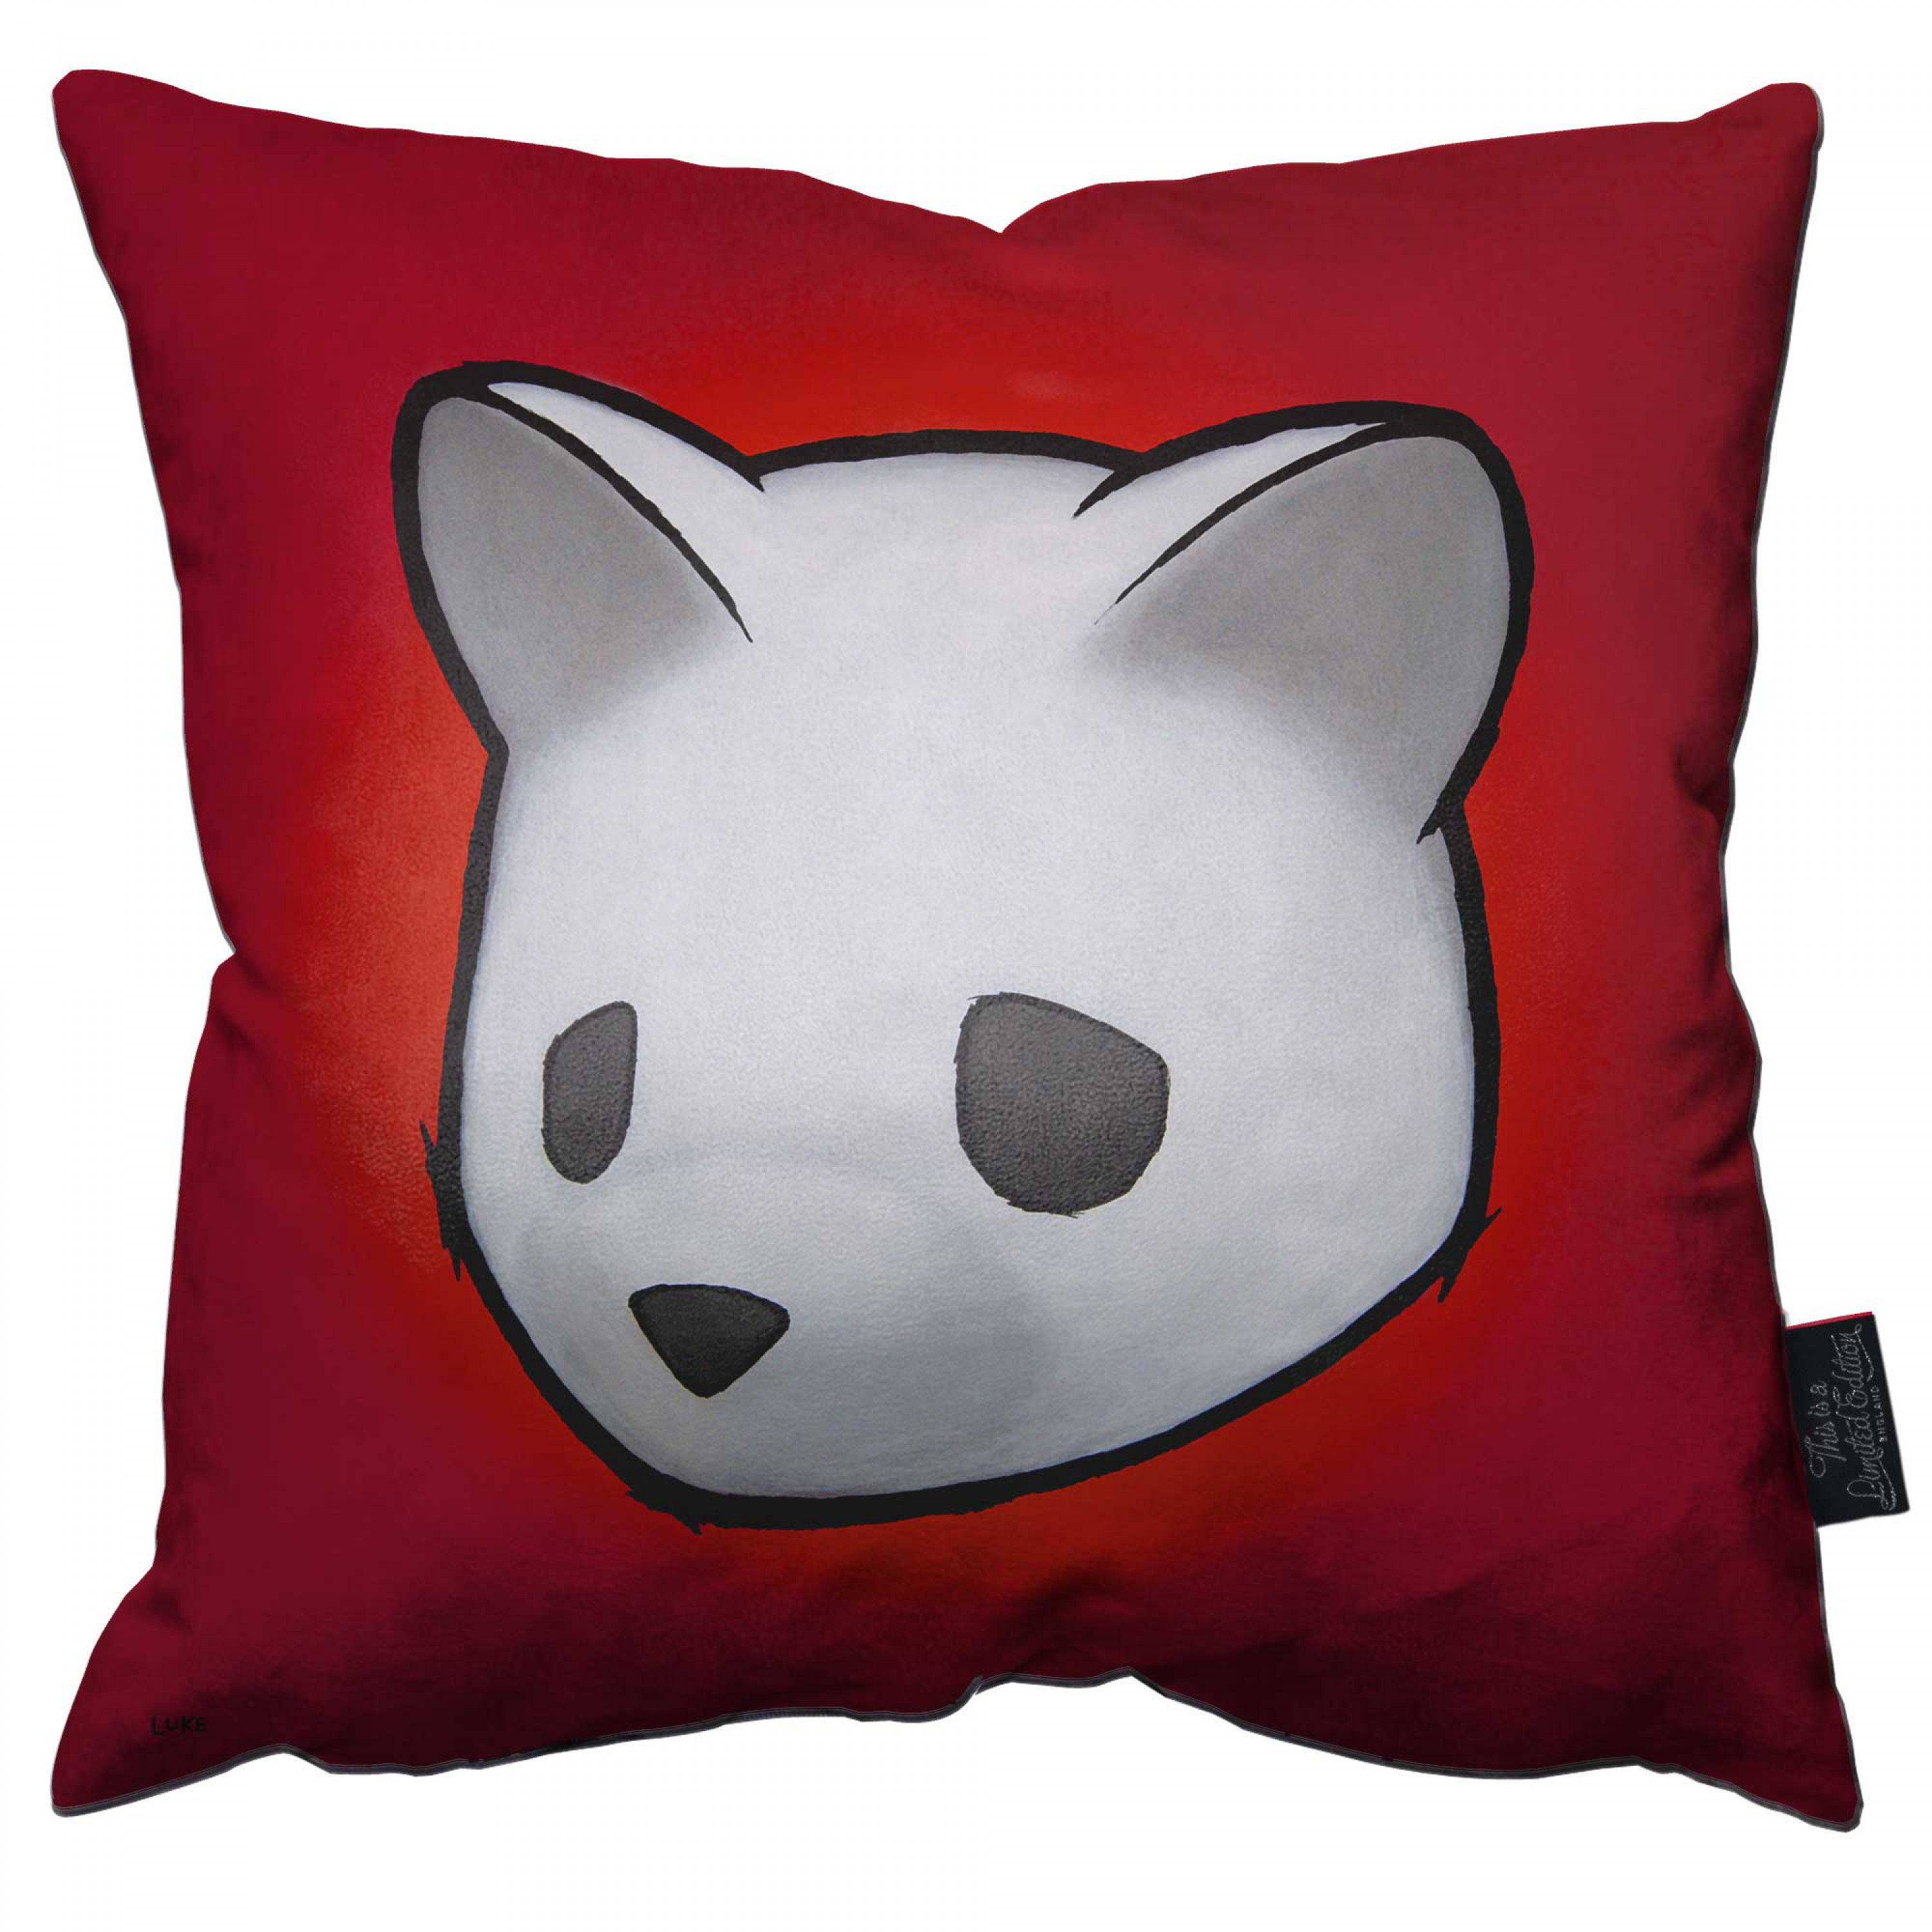 Original Bear Pillow